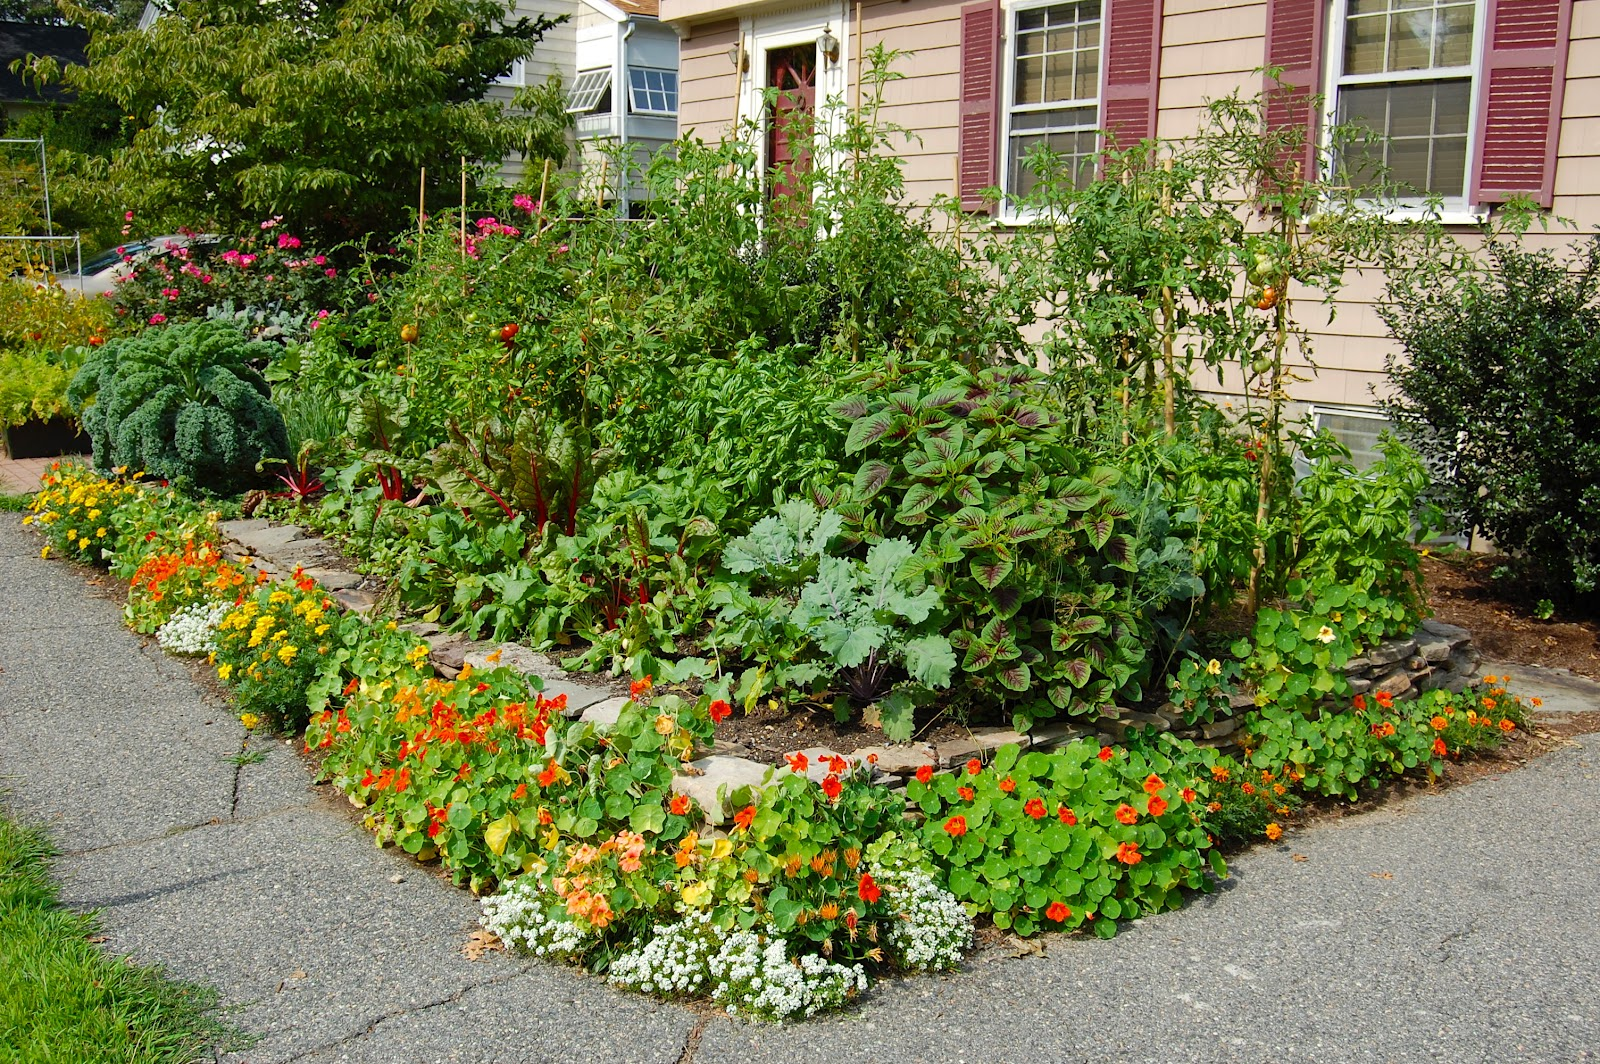 Landscaping landscaping ideas for front yard edible gardens for Front yard garden ideas designs